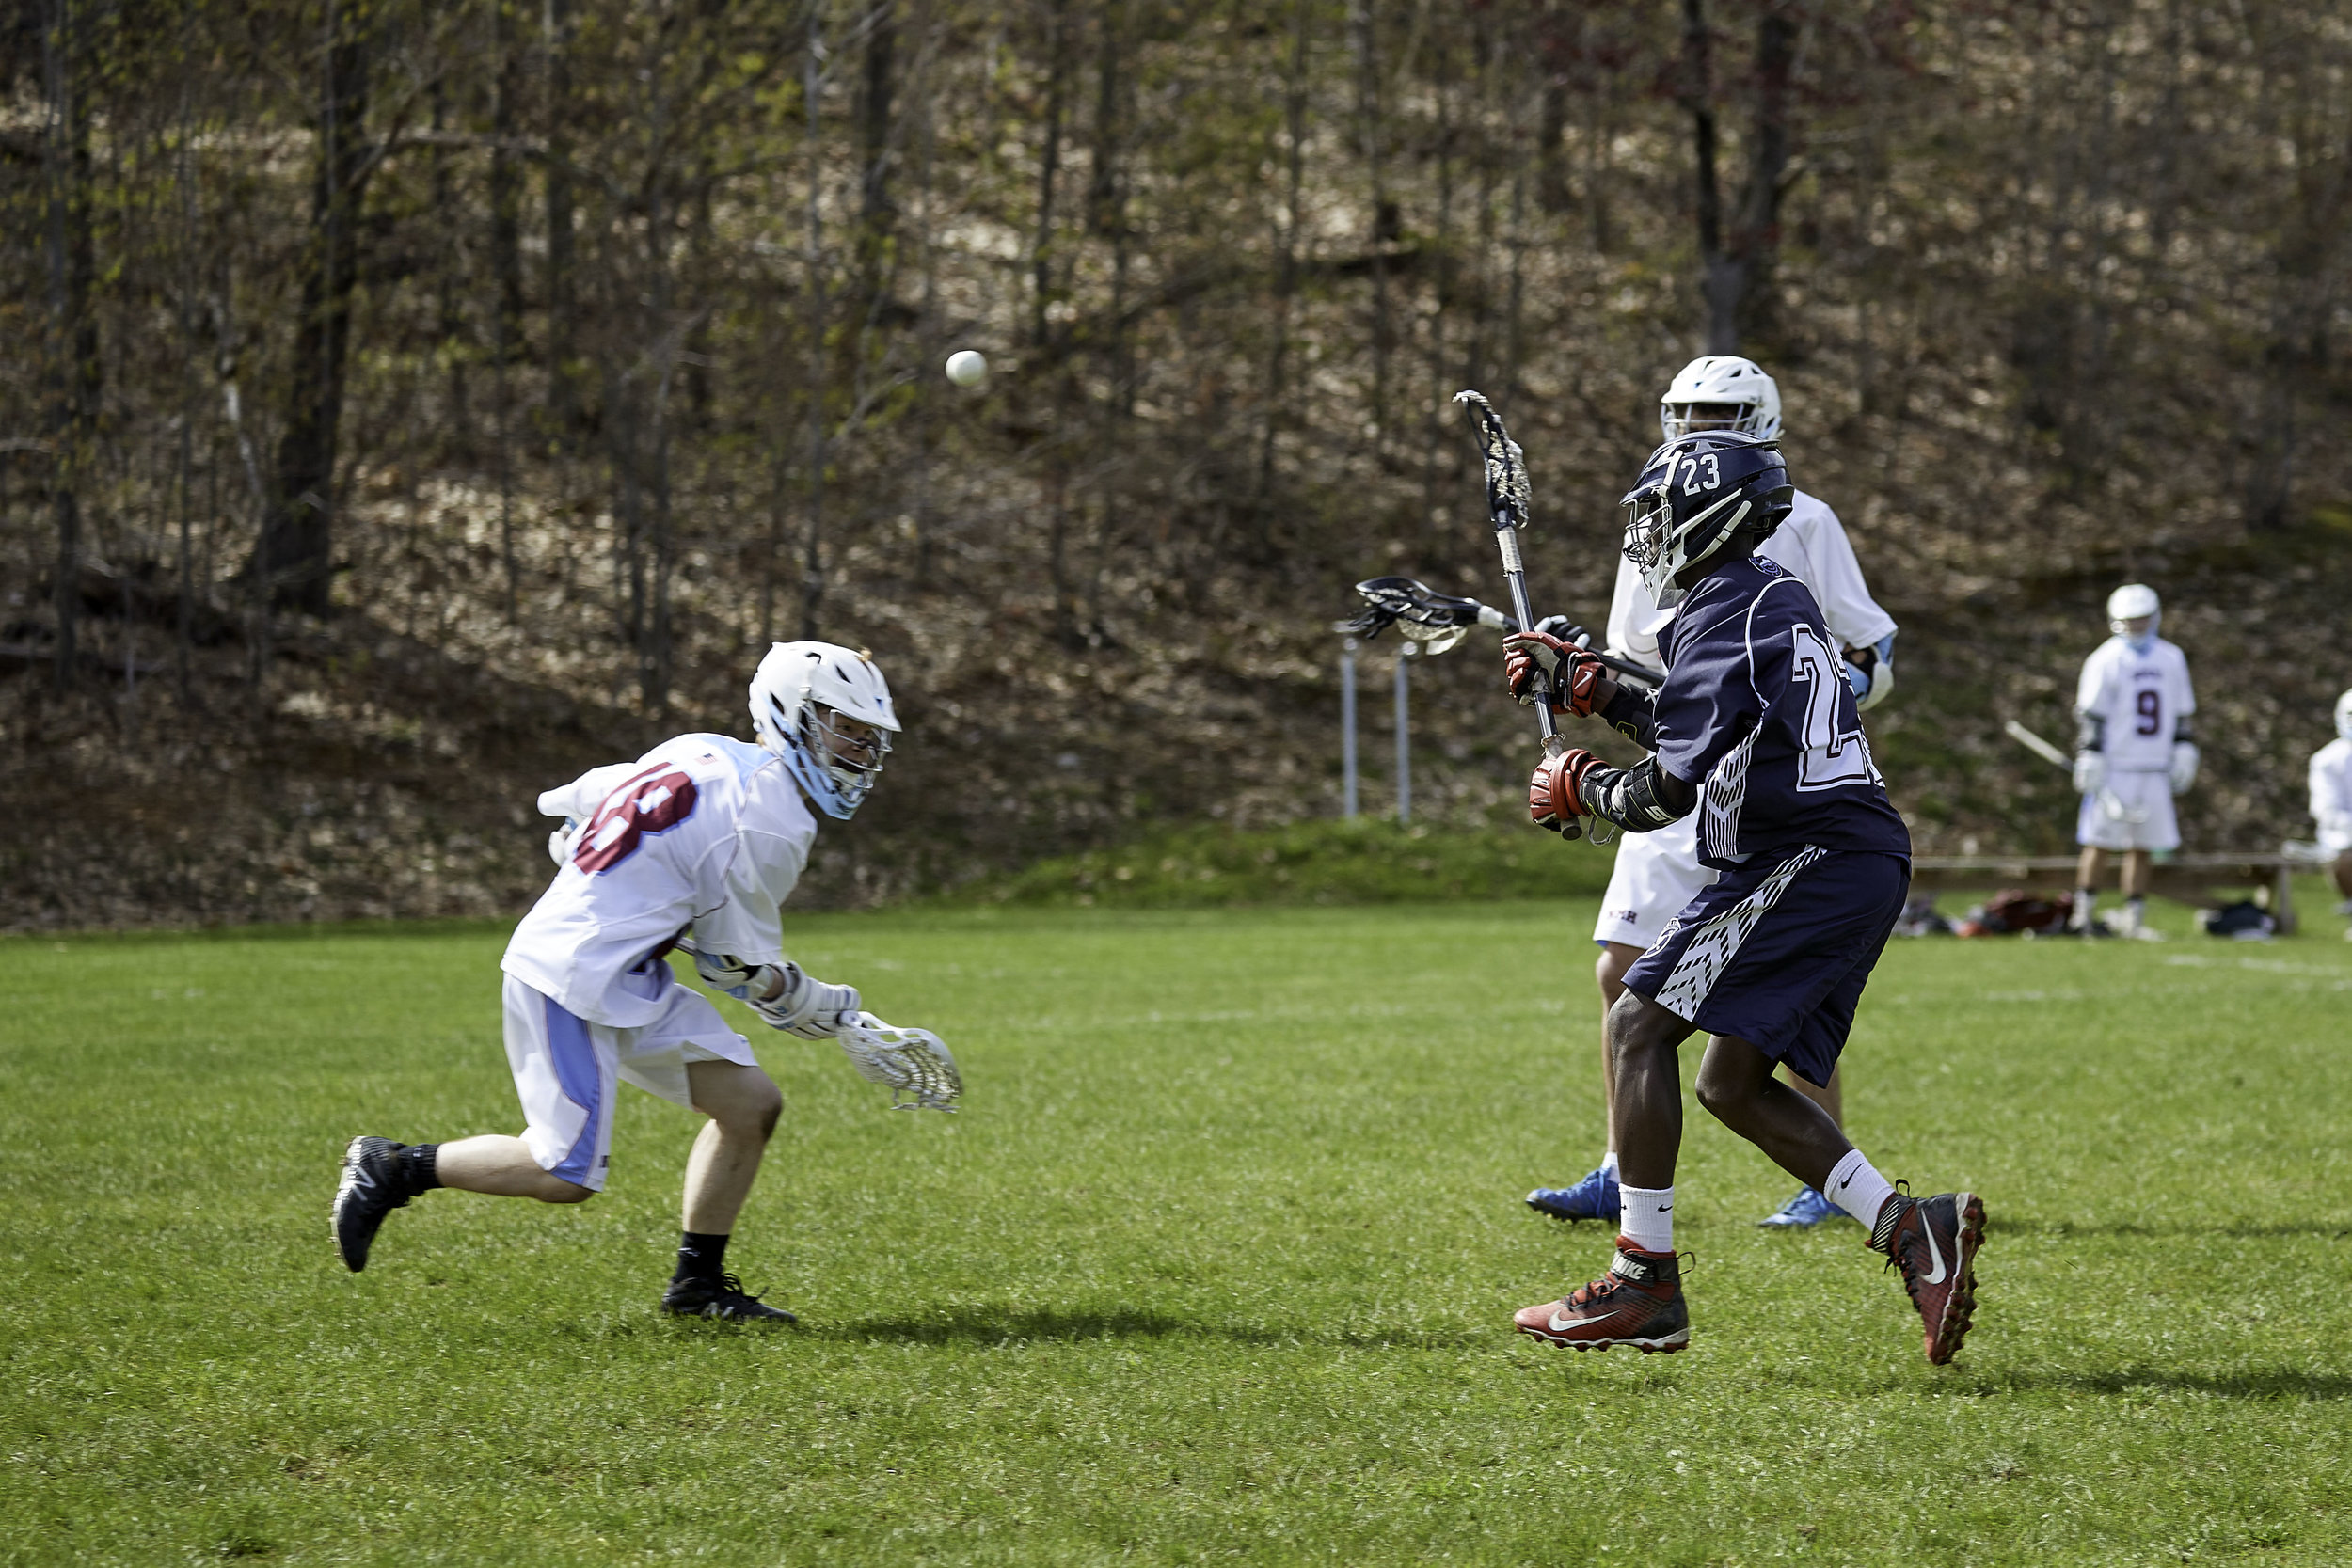 Boys Lax vs Northfield Mount Hermon JV - May 15 2019 - 0022.jpg